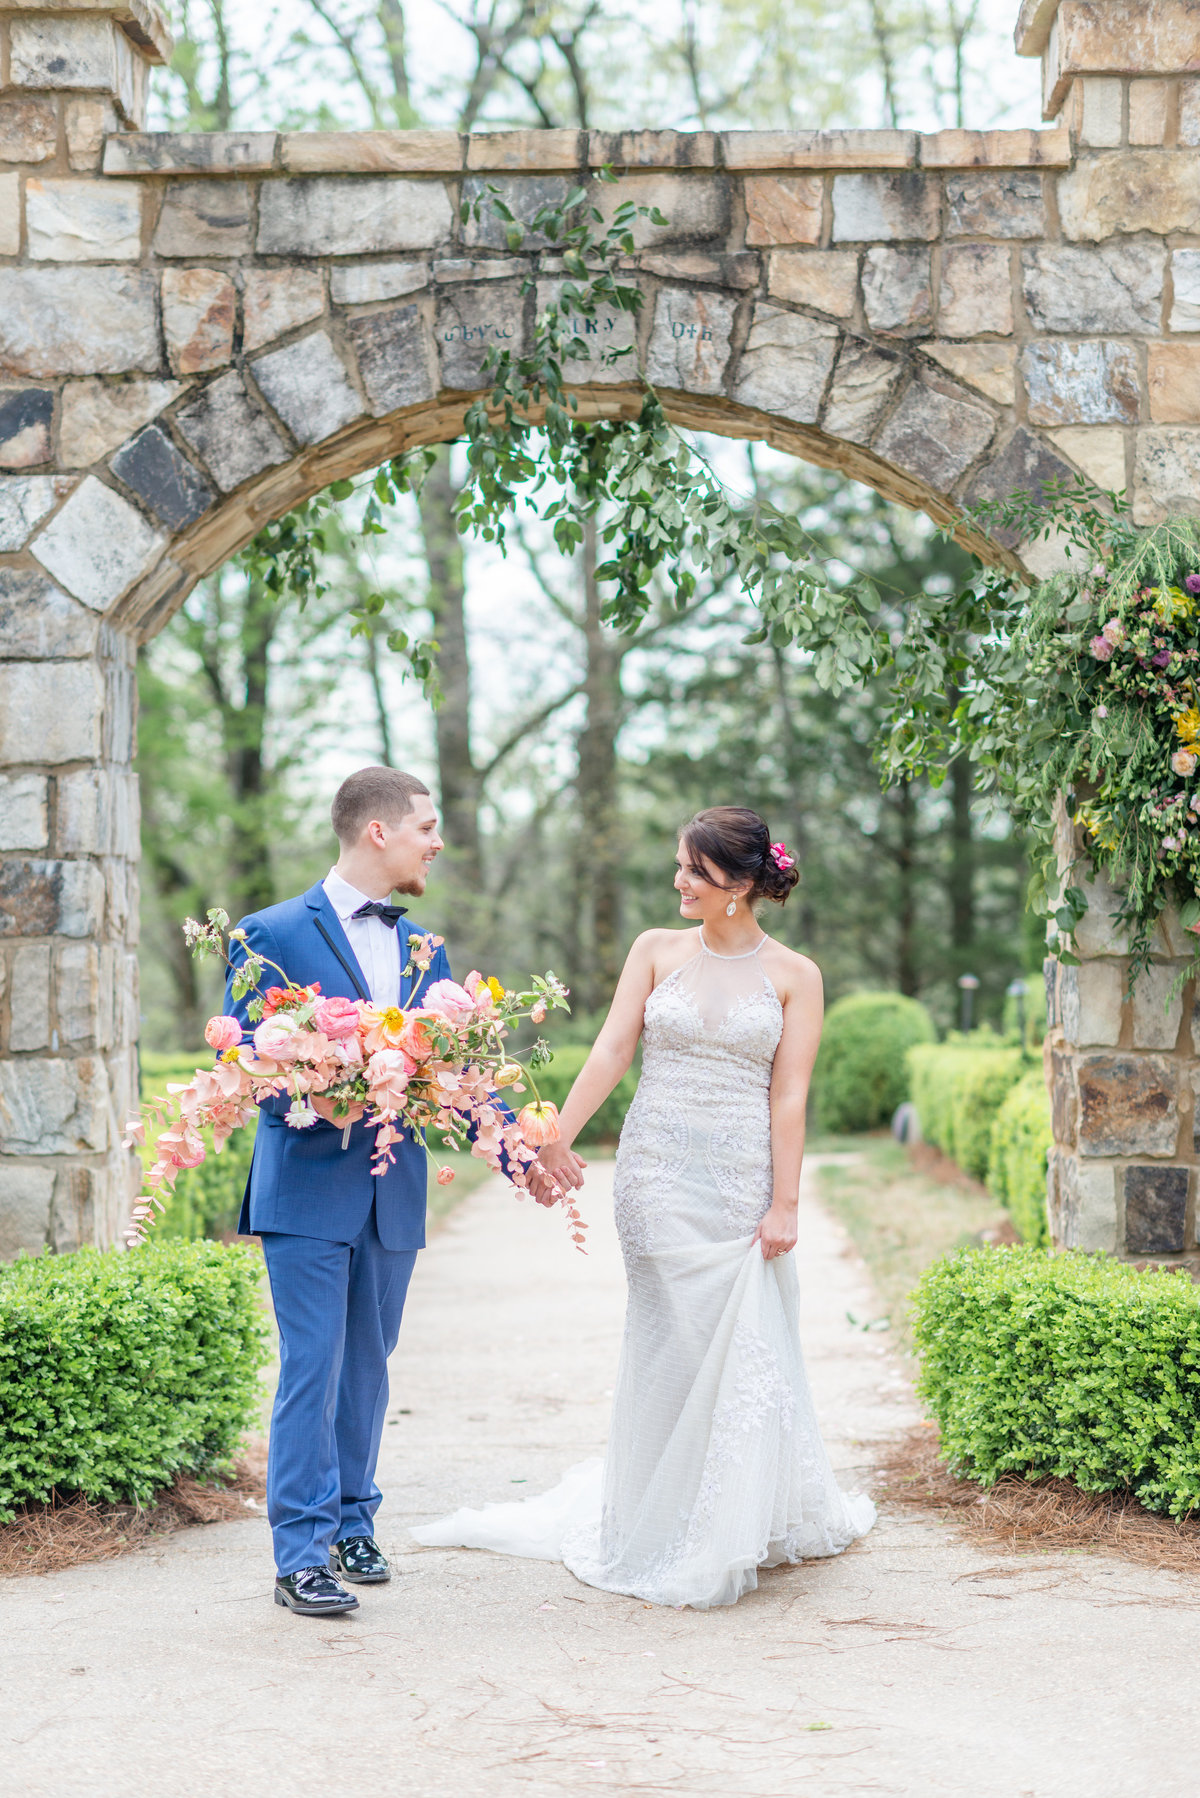 Man in blue suit holds a colorful bouquet while guiding a brunette bride through a large stone arch in a garden